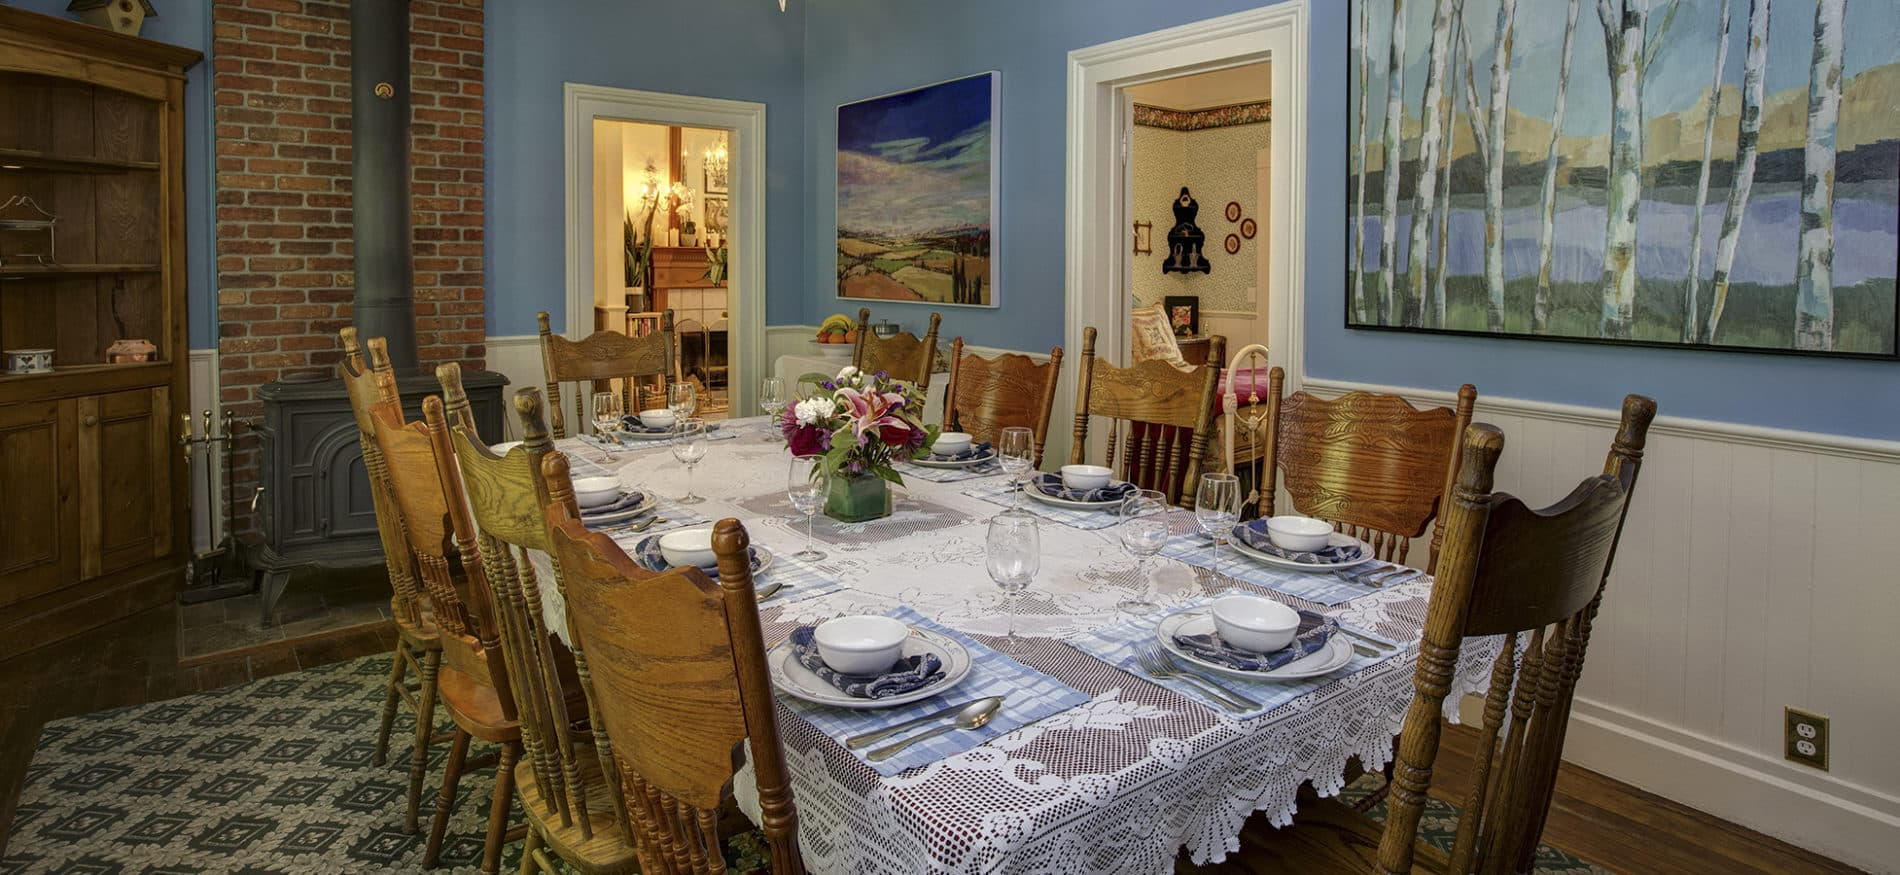 A sea blue dining room with antique wooden chairs around placesettings with a floral centerpiece and colorful artwork on the walls.